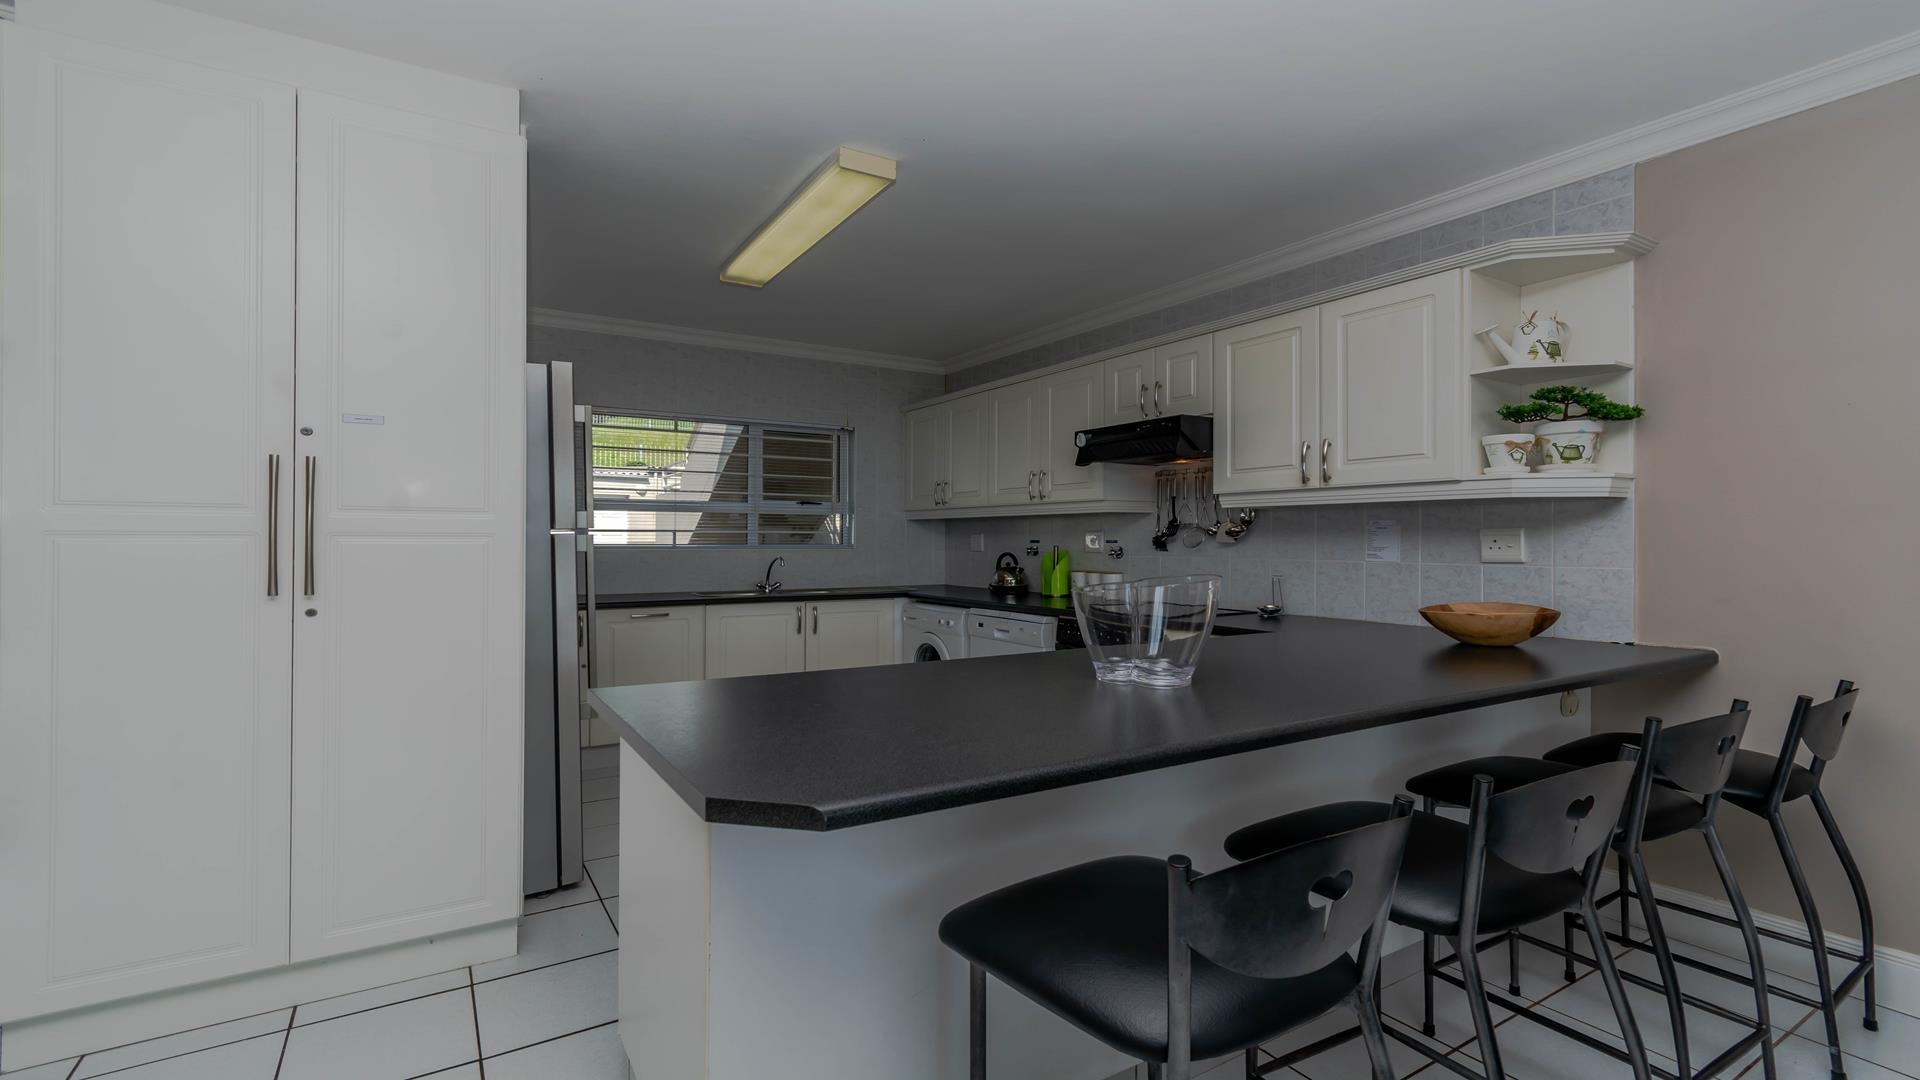 4 Bedroom Apartment / Flat For Sale in Ballito Central